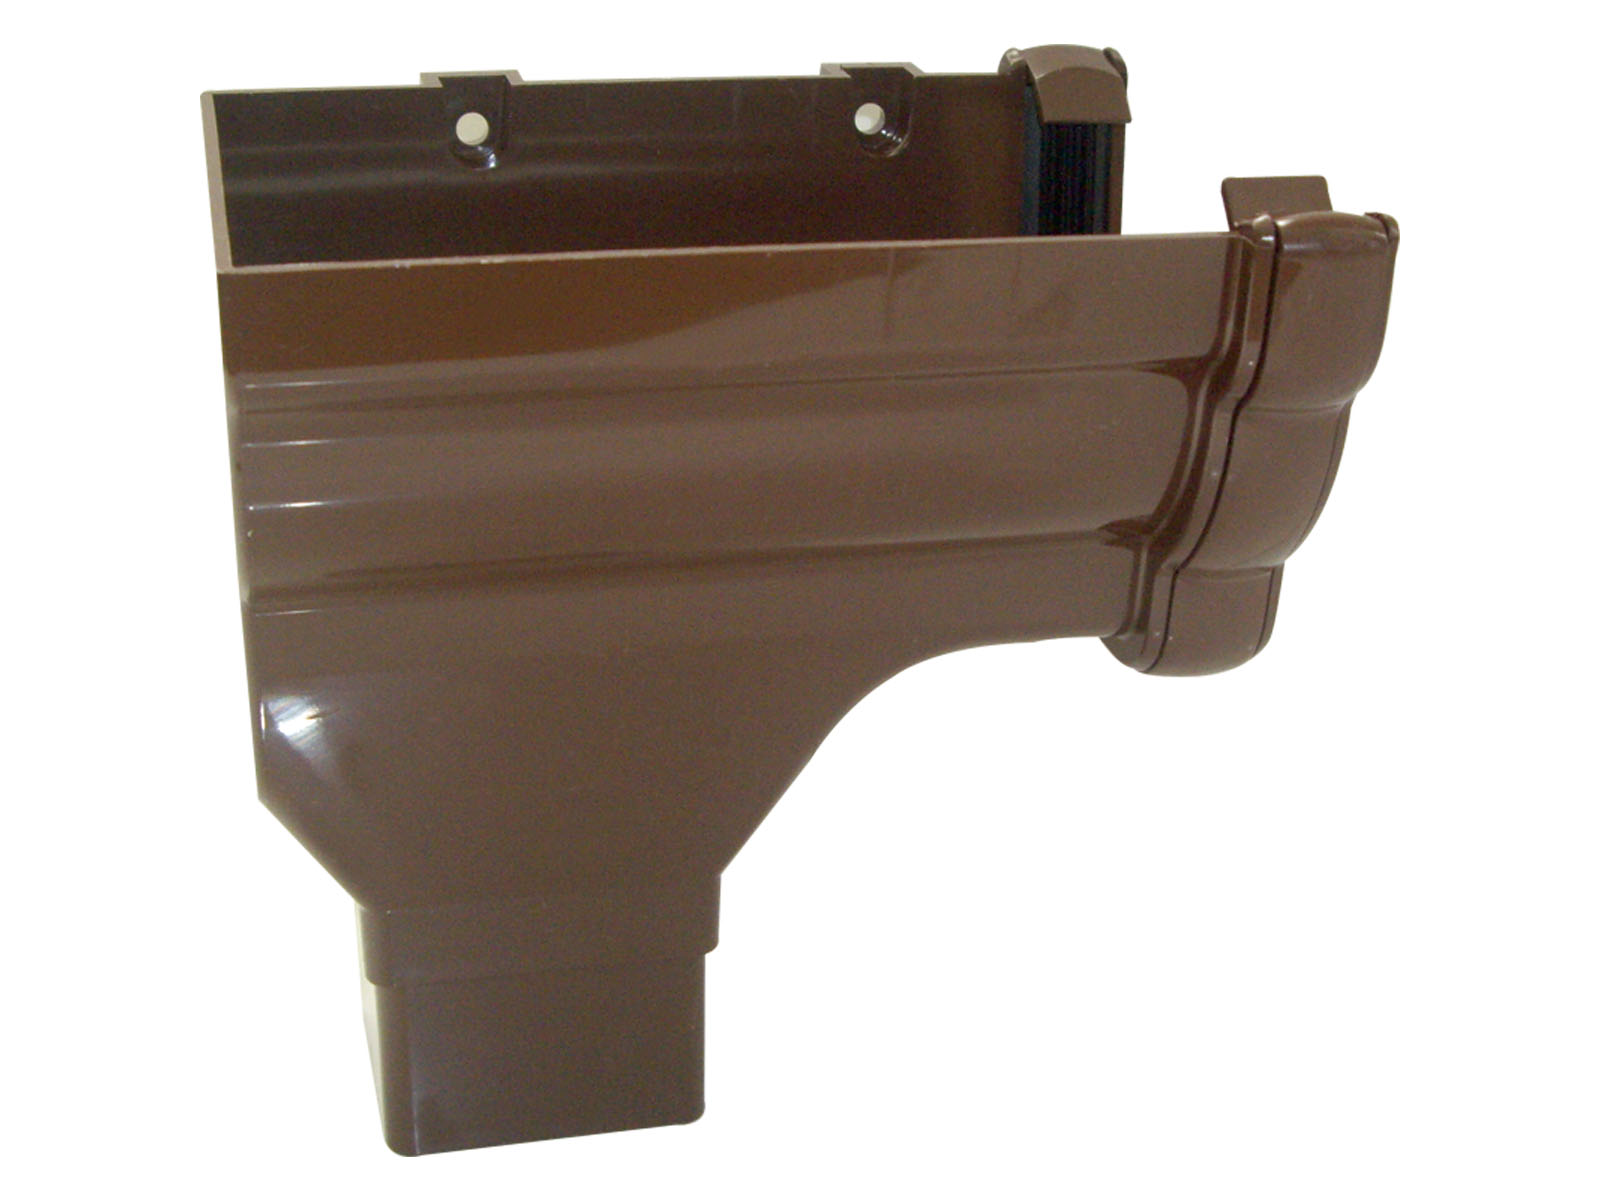 FLOPLAST RON2BR NIAGARA - L/H STOPEND OUTLET - BROWN